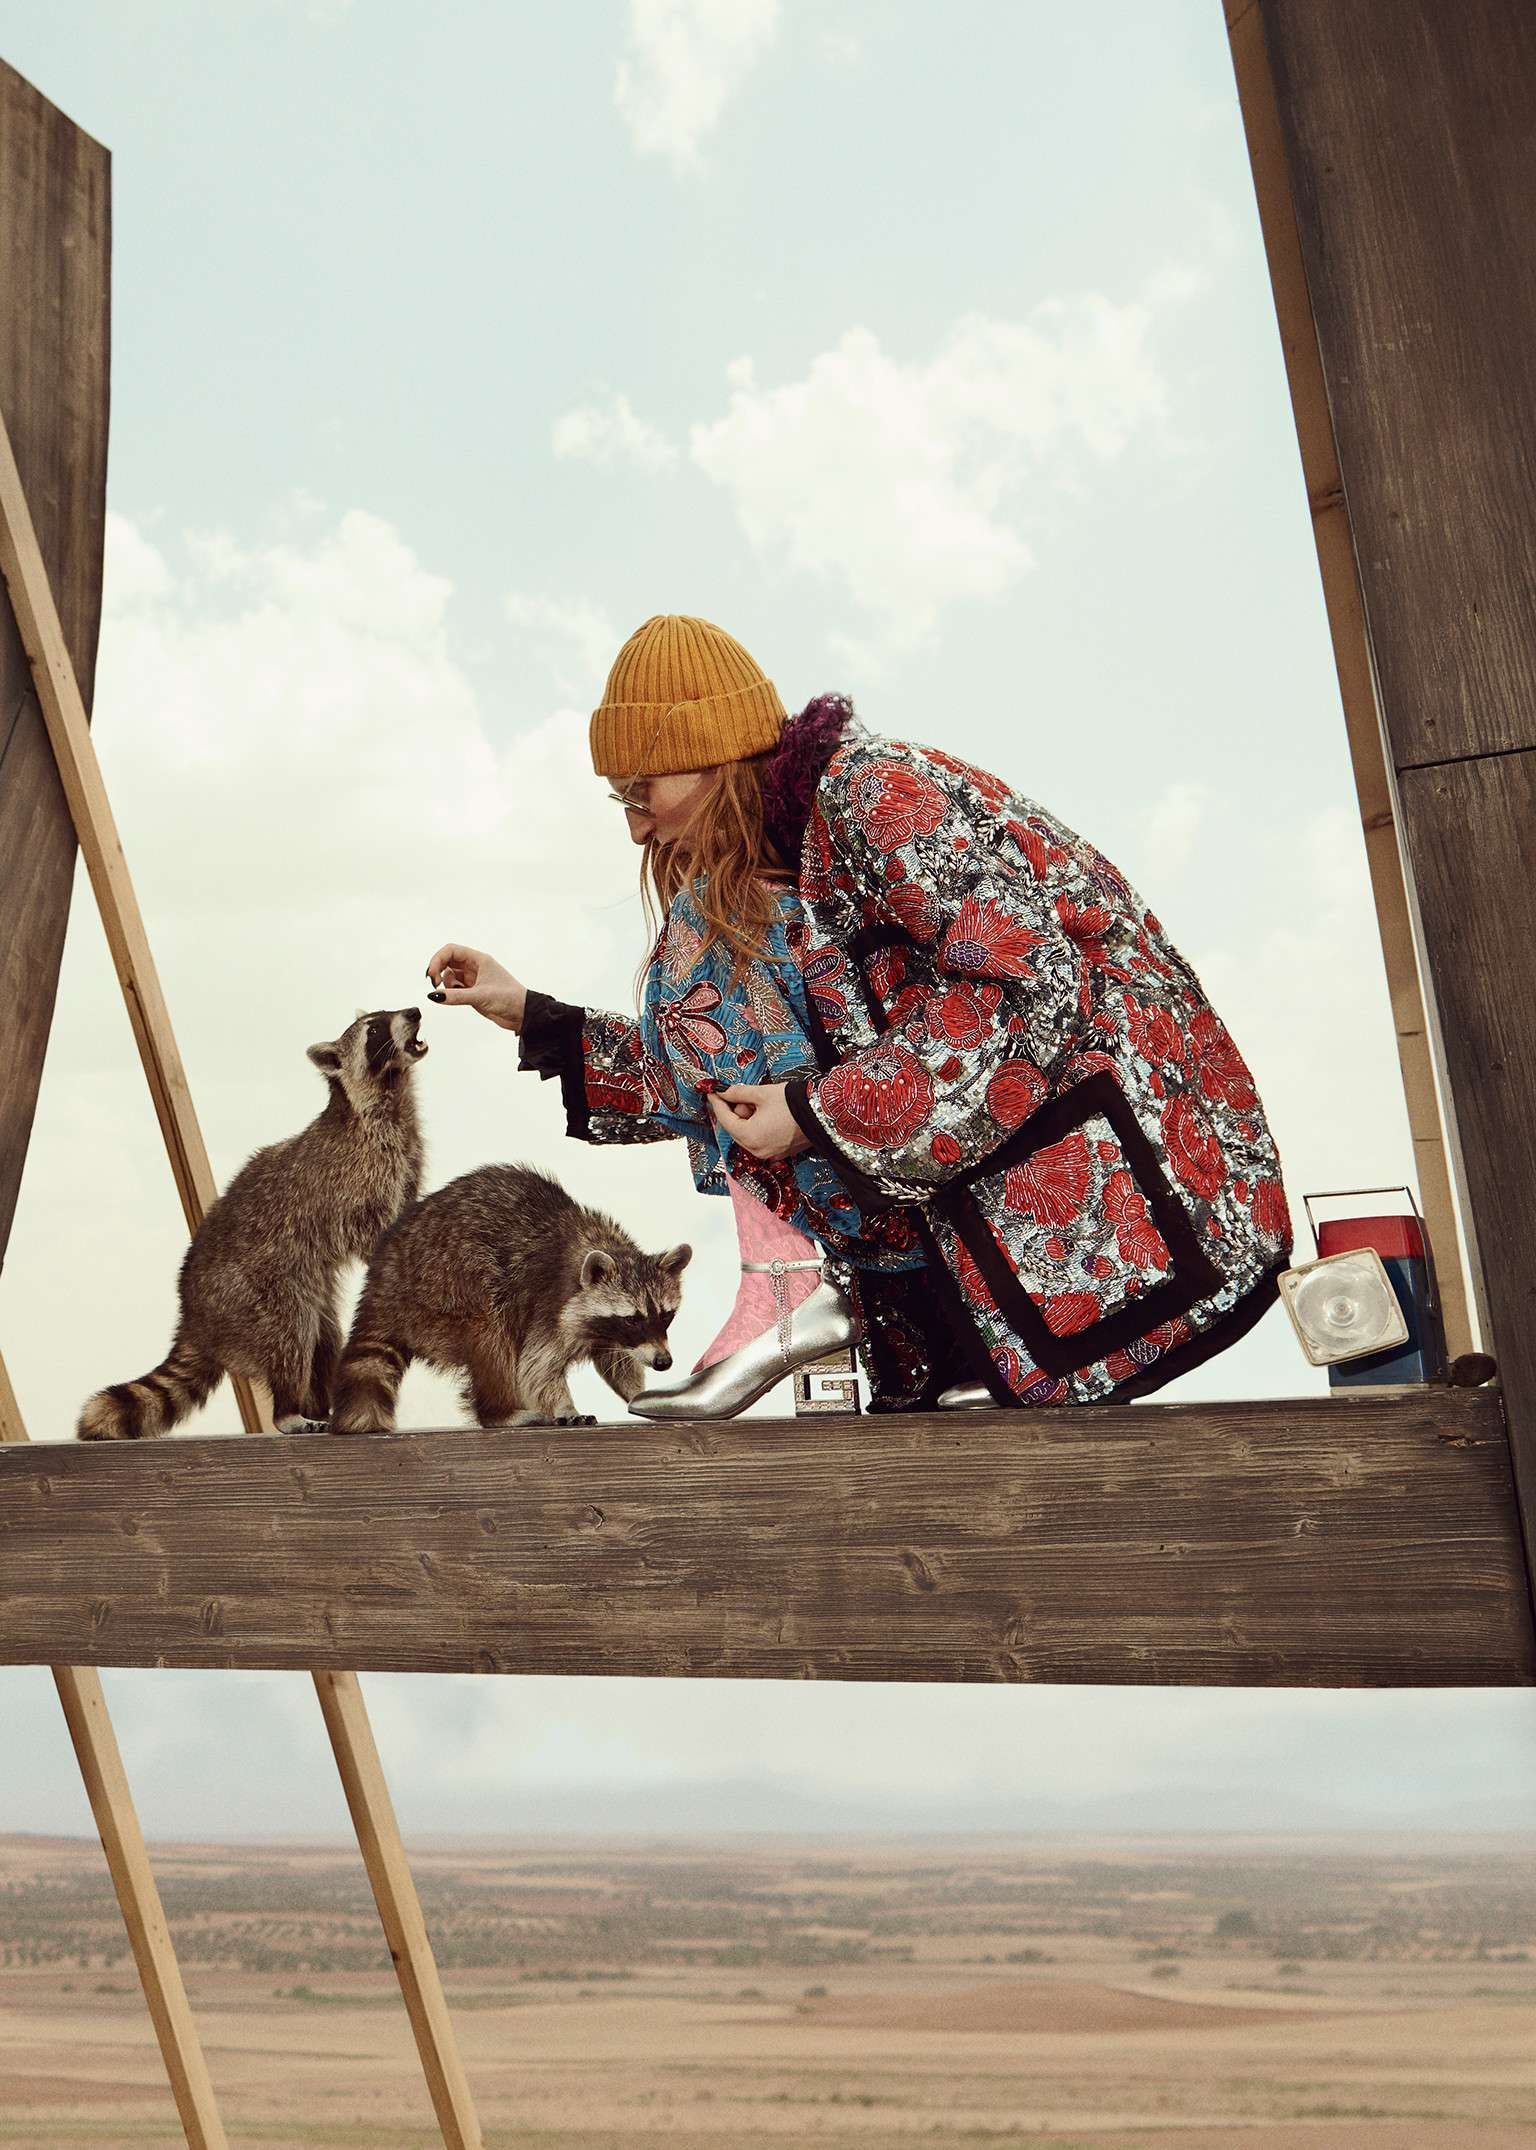 a96eebc83b Gucci Gothic  the Cruise 2019 campaign features young farmer-punks in a  surreal